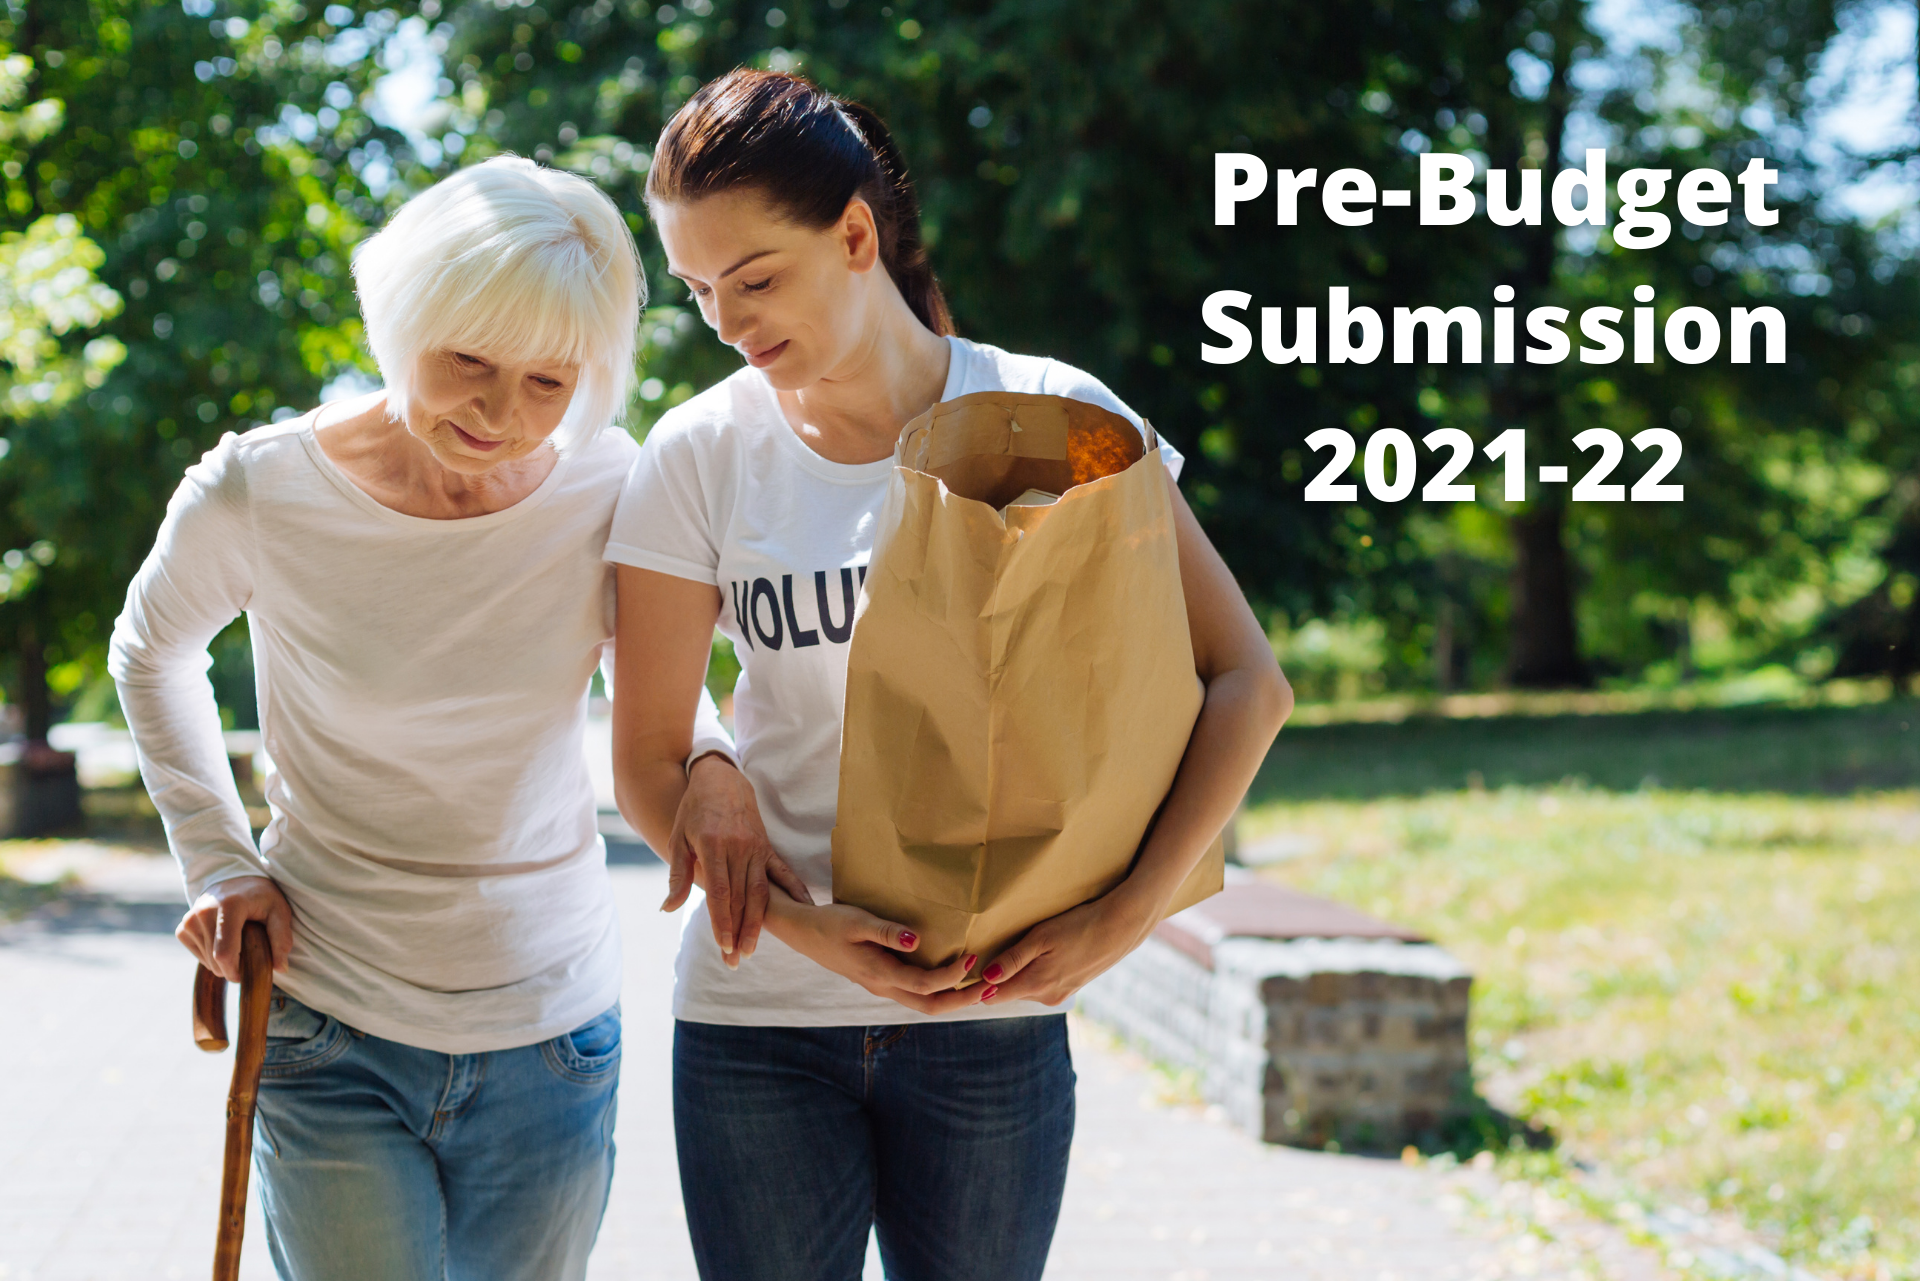 Pre-Budget Submission 2021-22